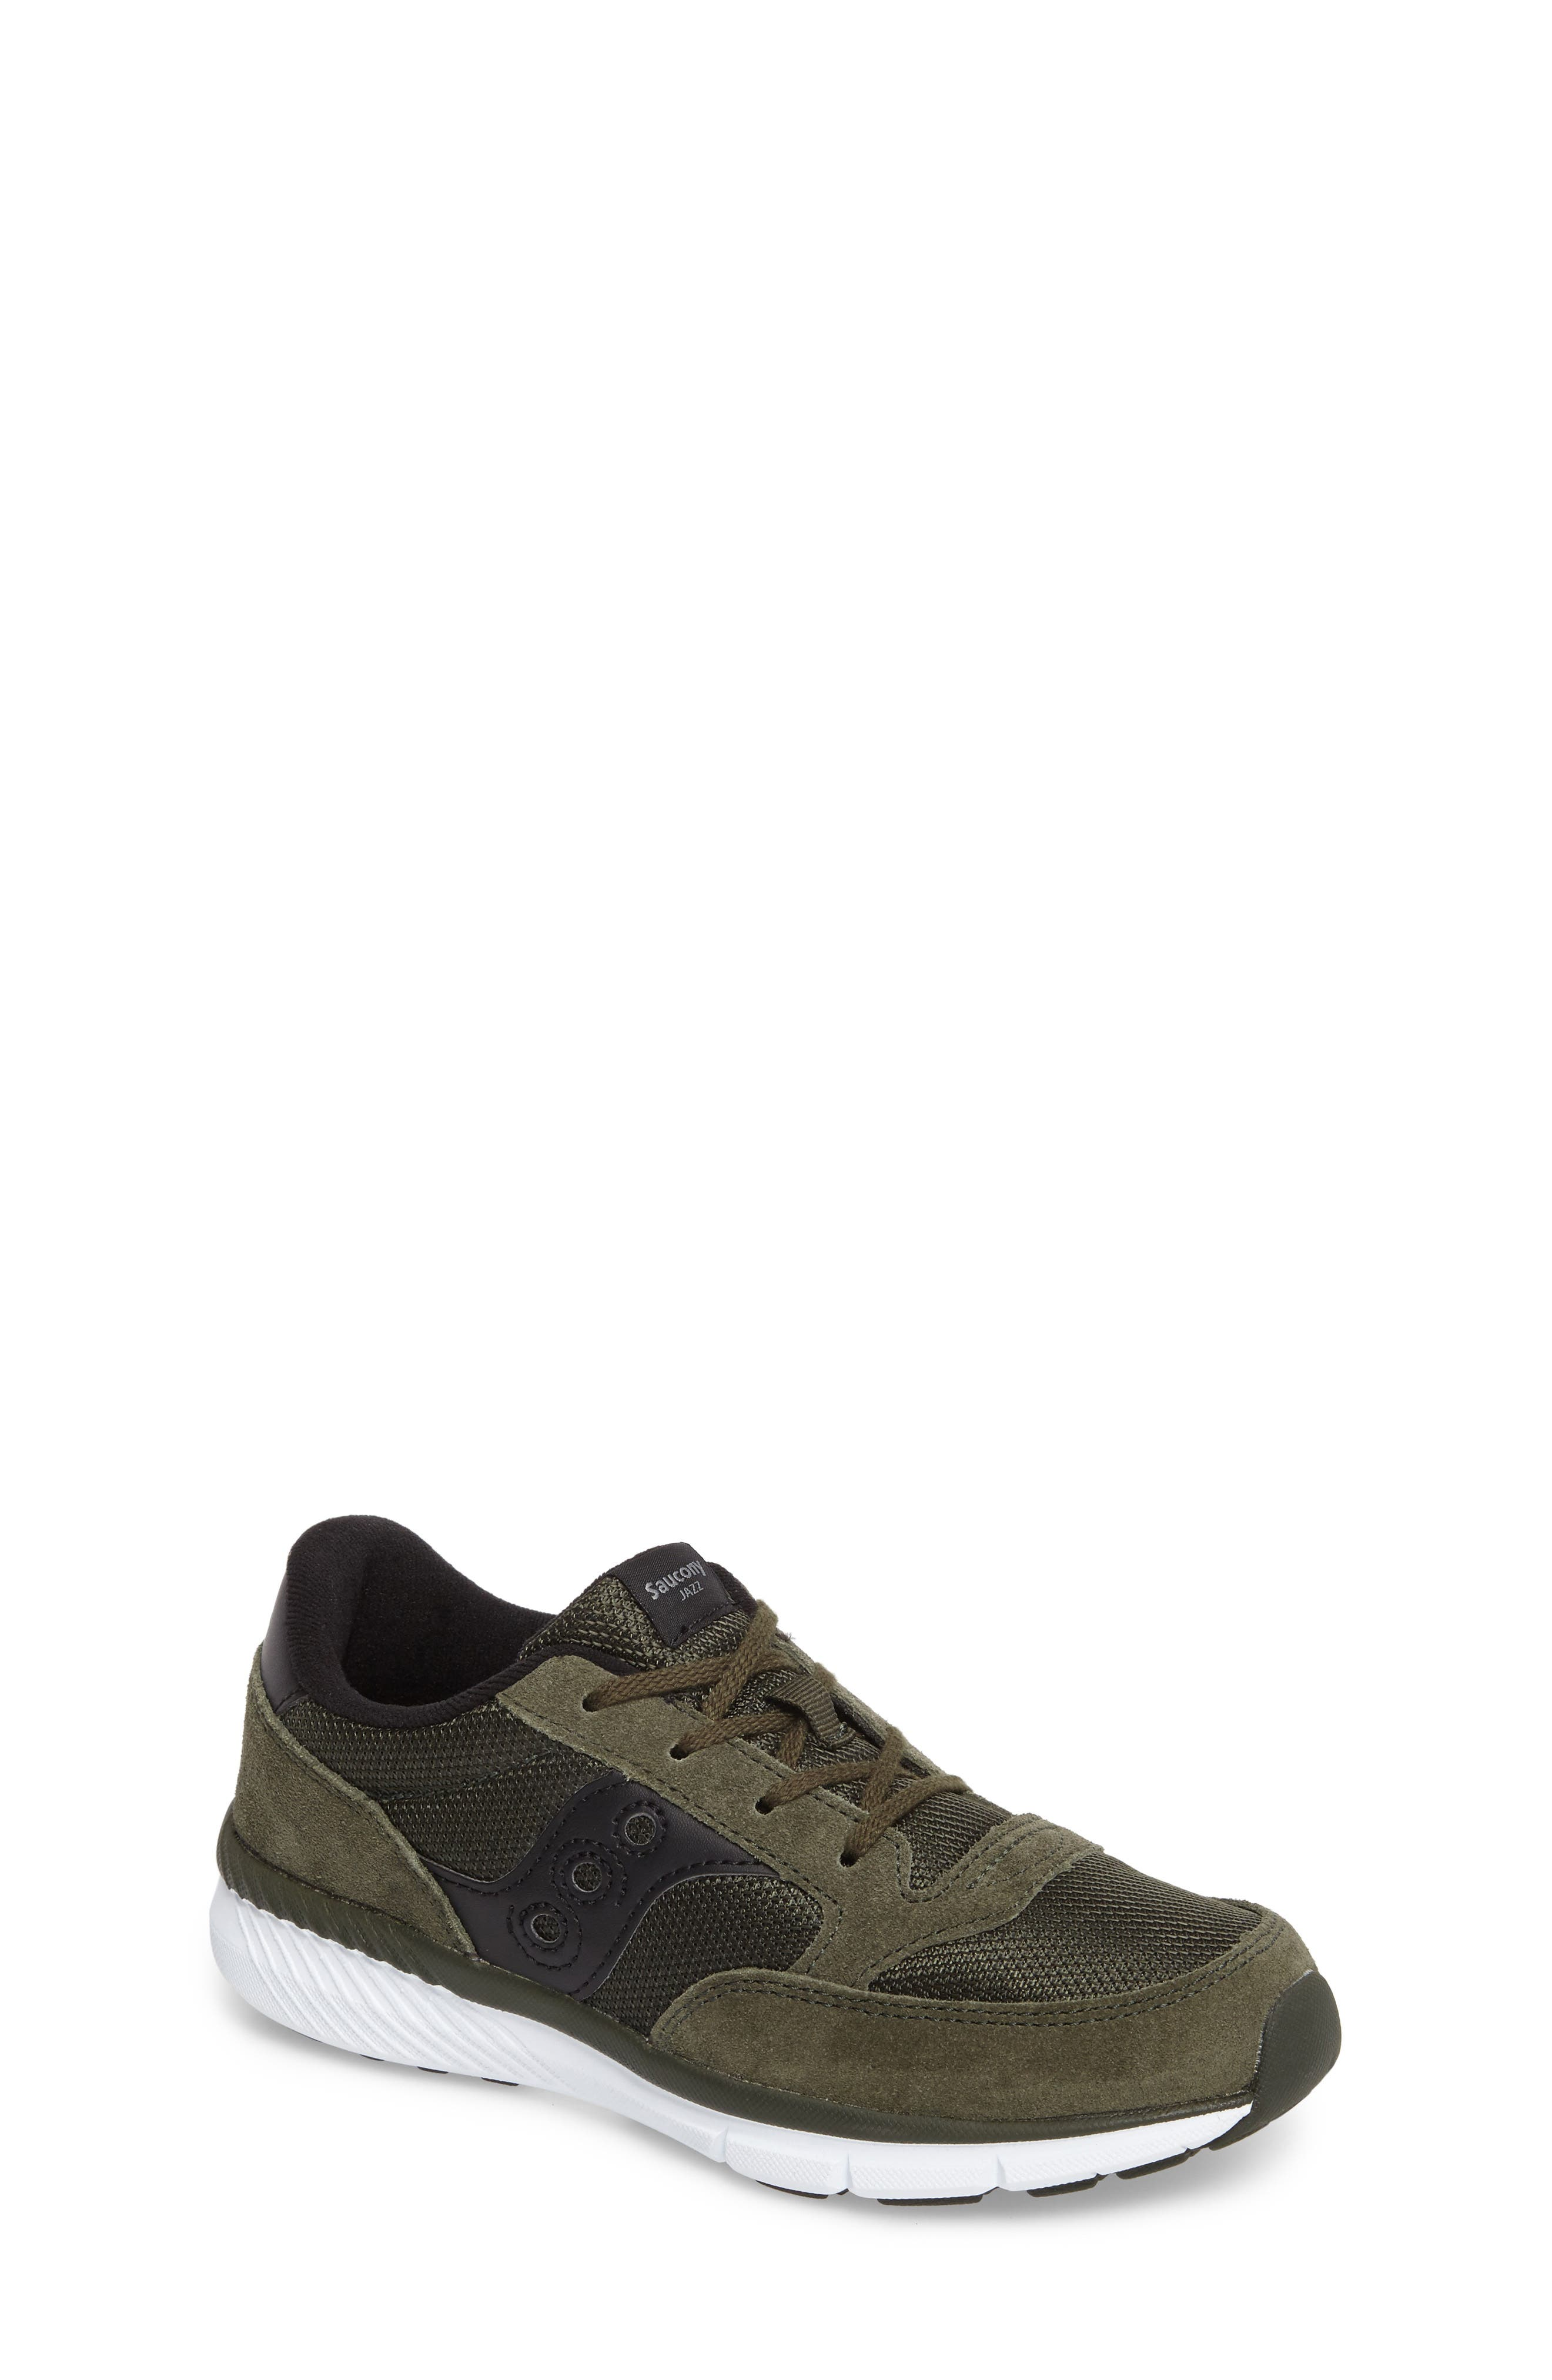 Jazz Lite Sneaker,                             Main thumbnail 1, color,                             Olive